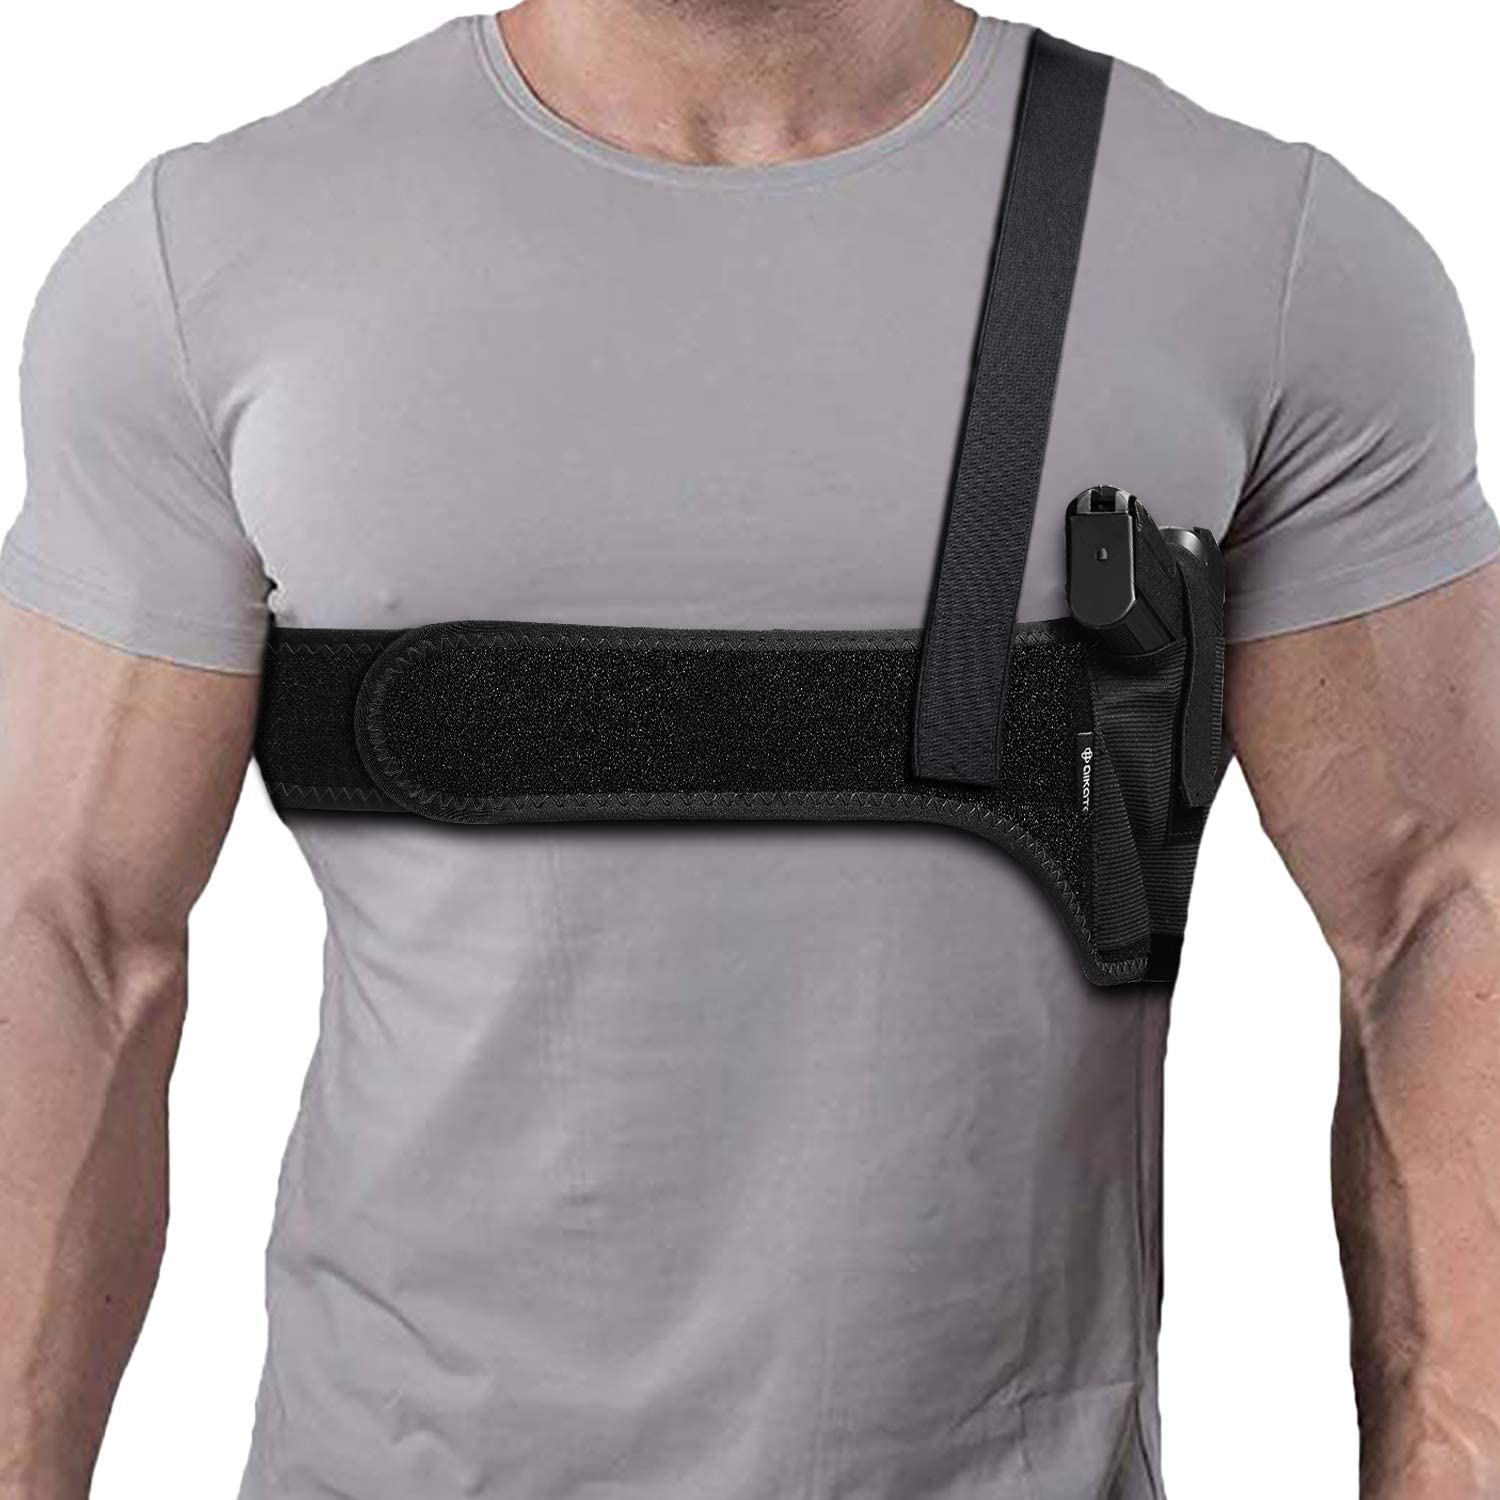 Kick it old school with one of the best shoulder holsters